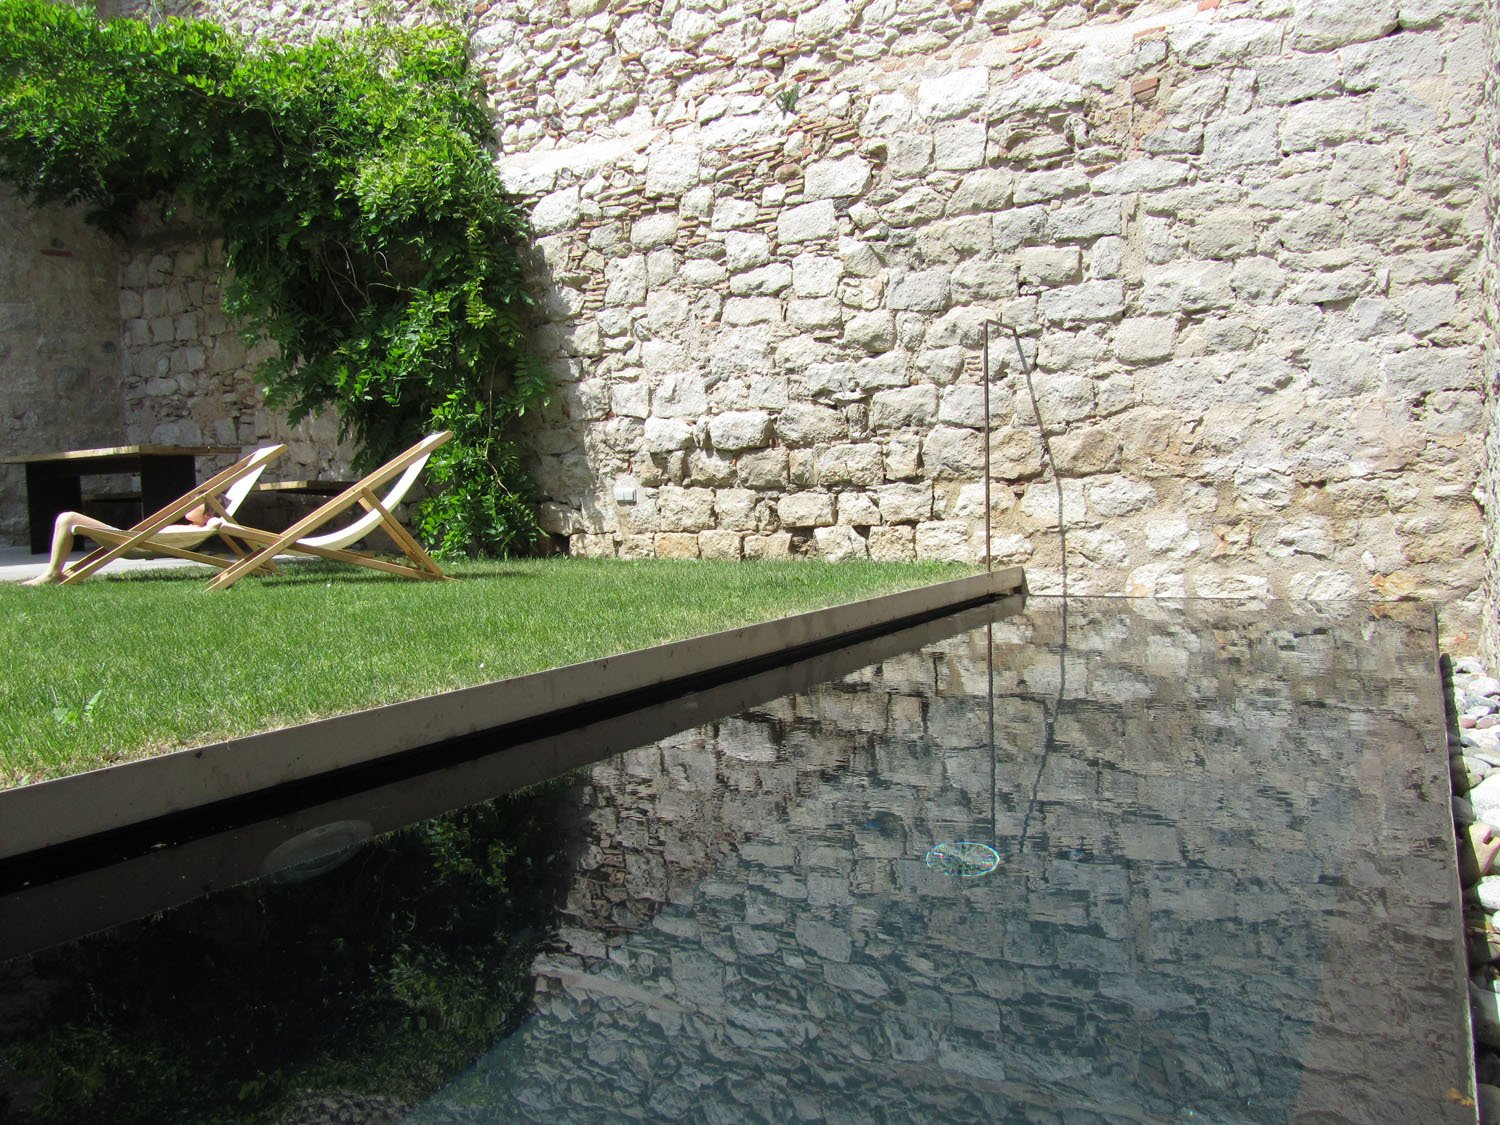 An old cistern found on the original site is now a black concrete plunge pool.